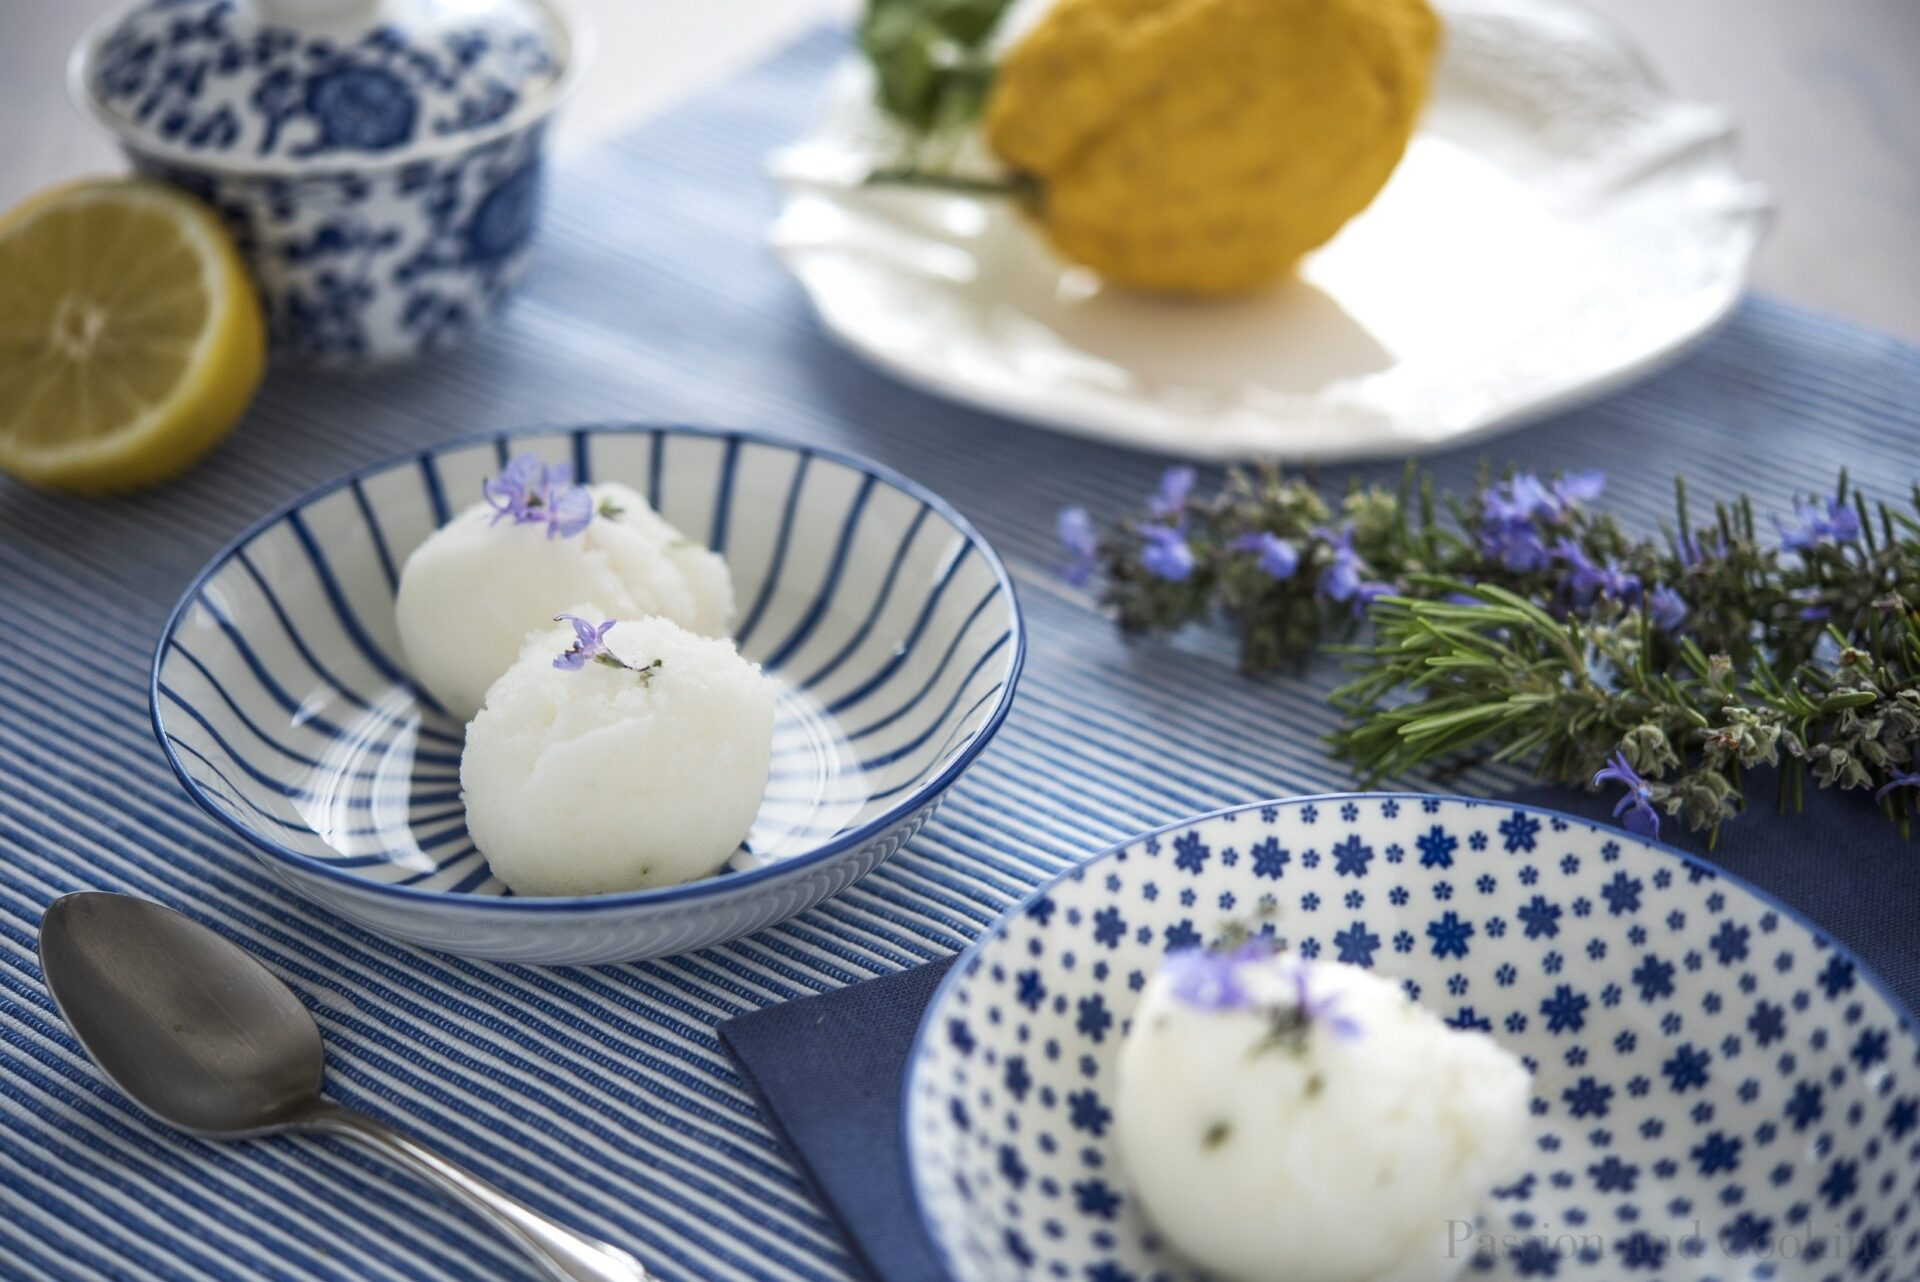 Lemon and rosemary sorbet